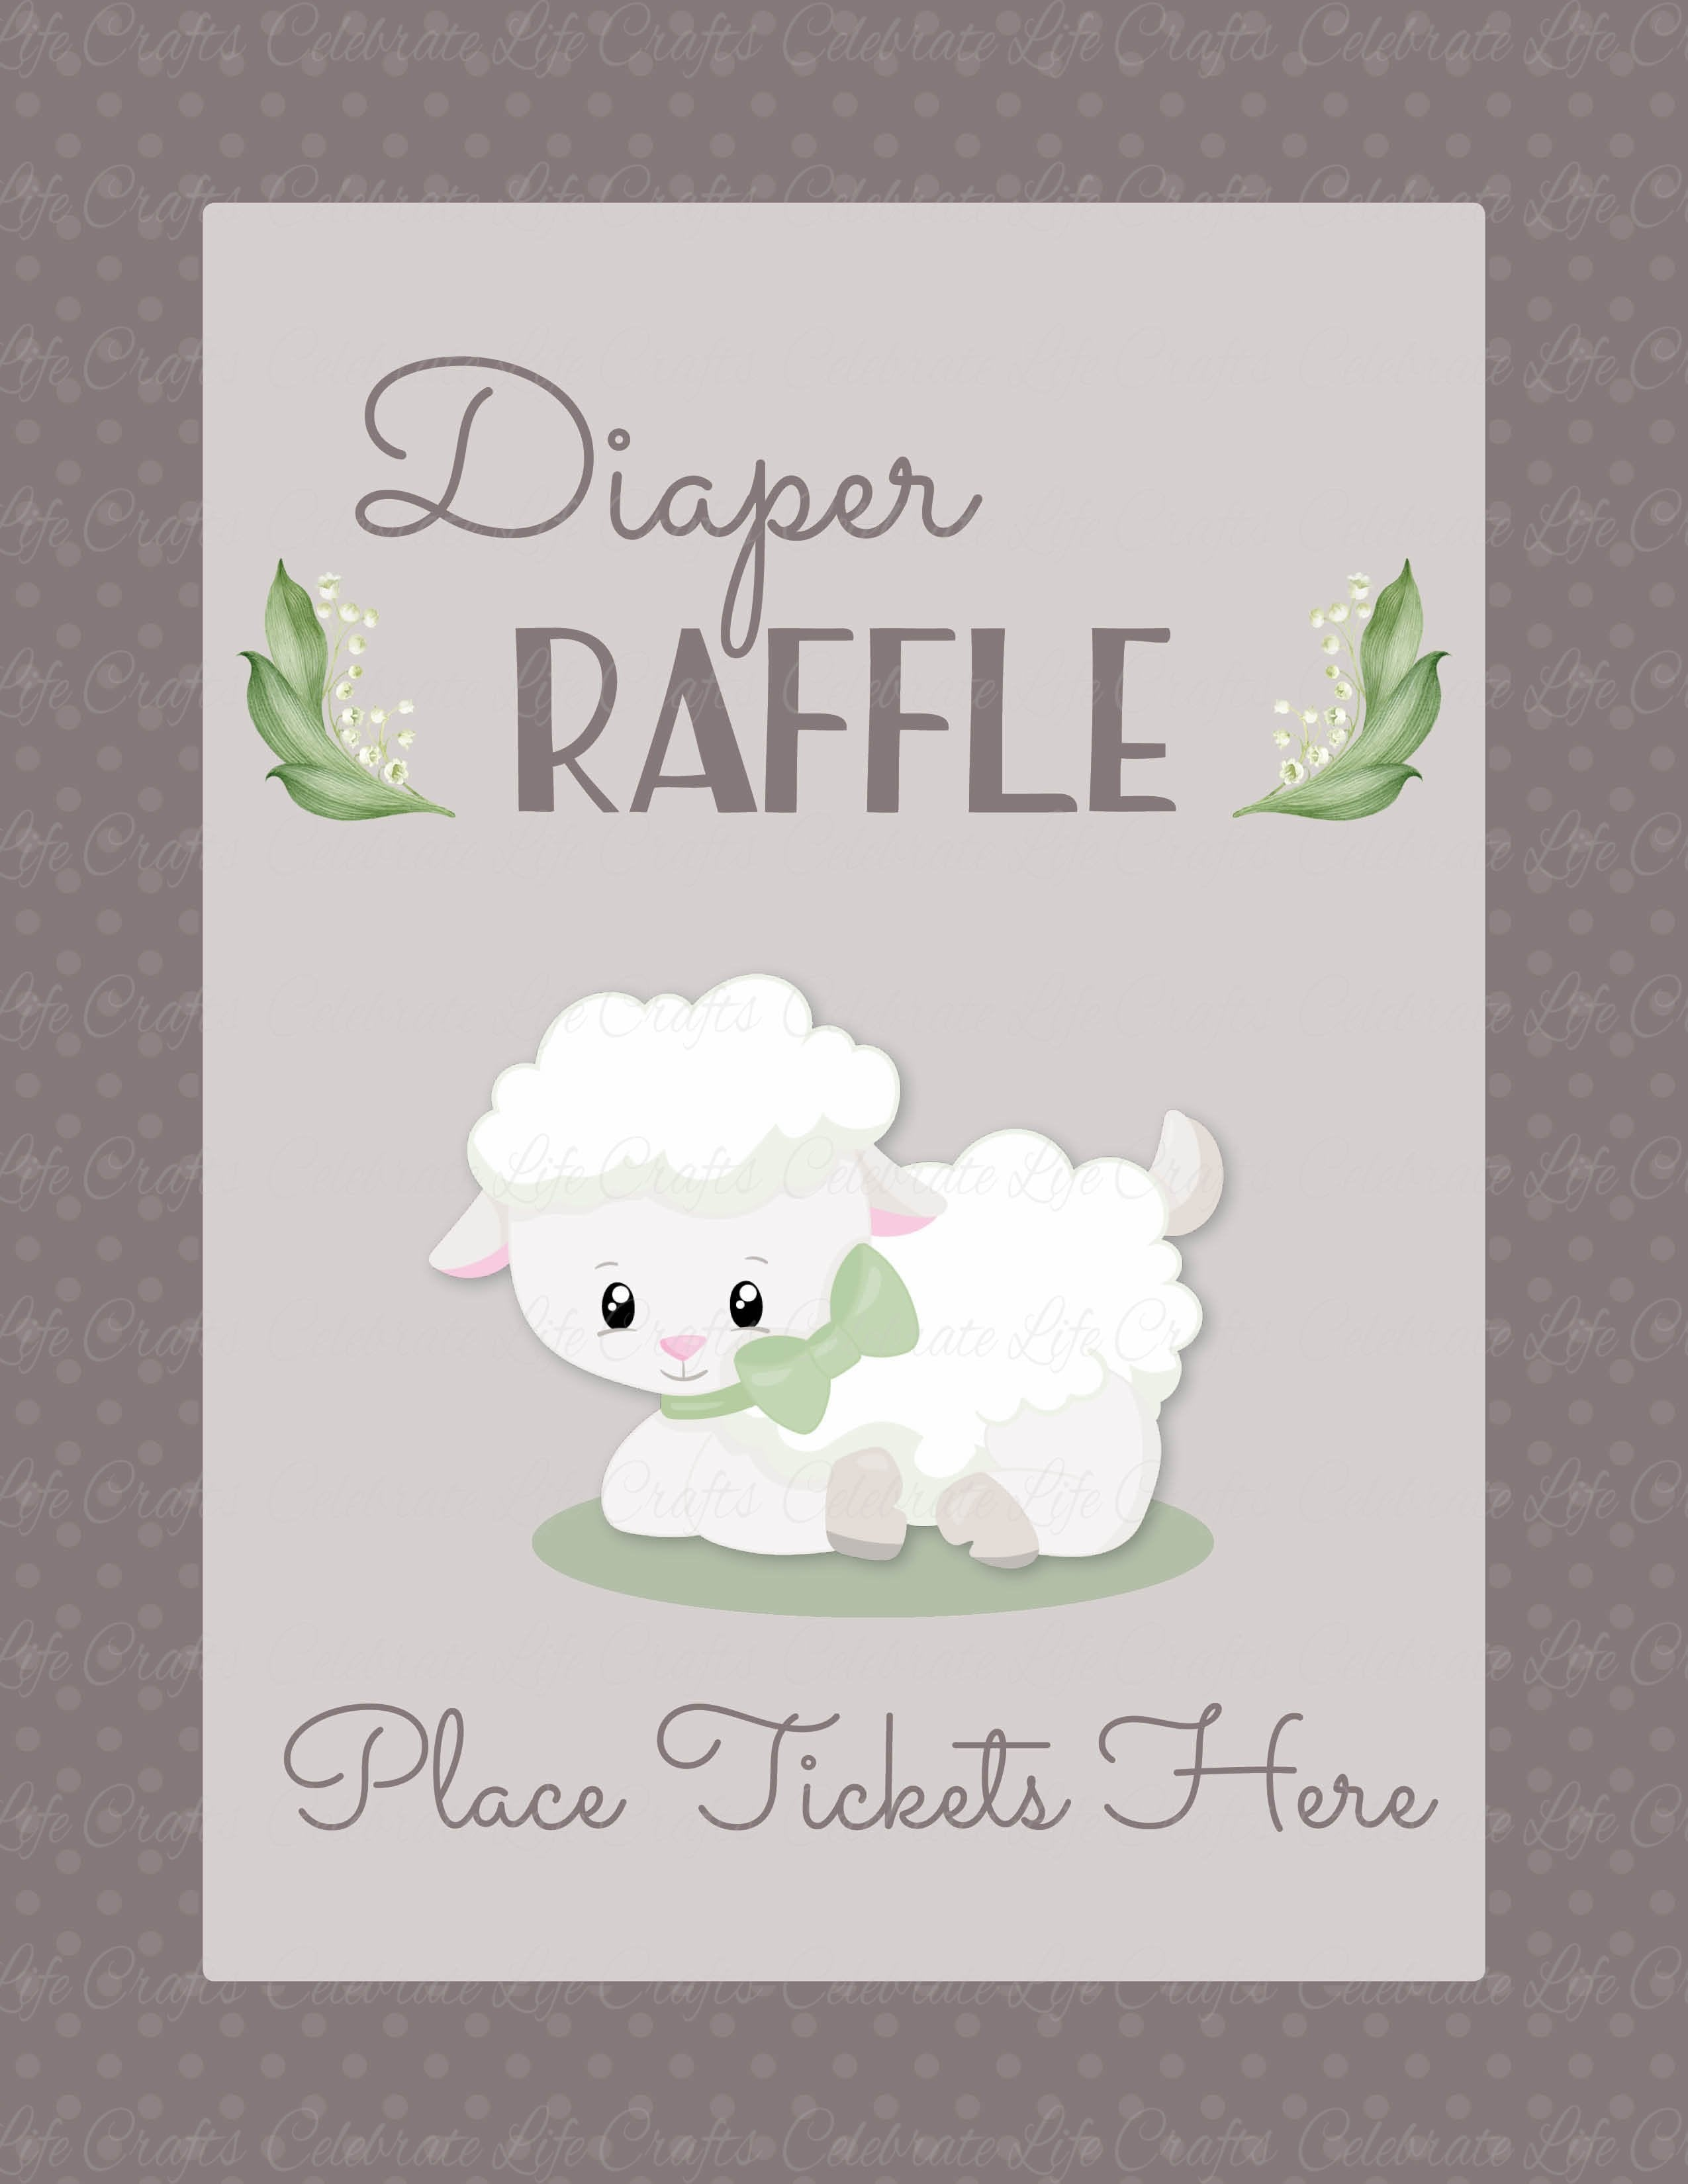 Diaper Raffle Tickets for Baby Shower - Lamb Baby Shower Theme ...